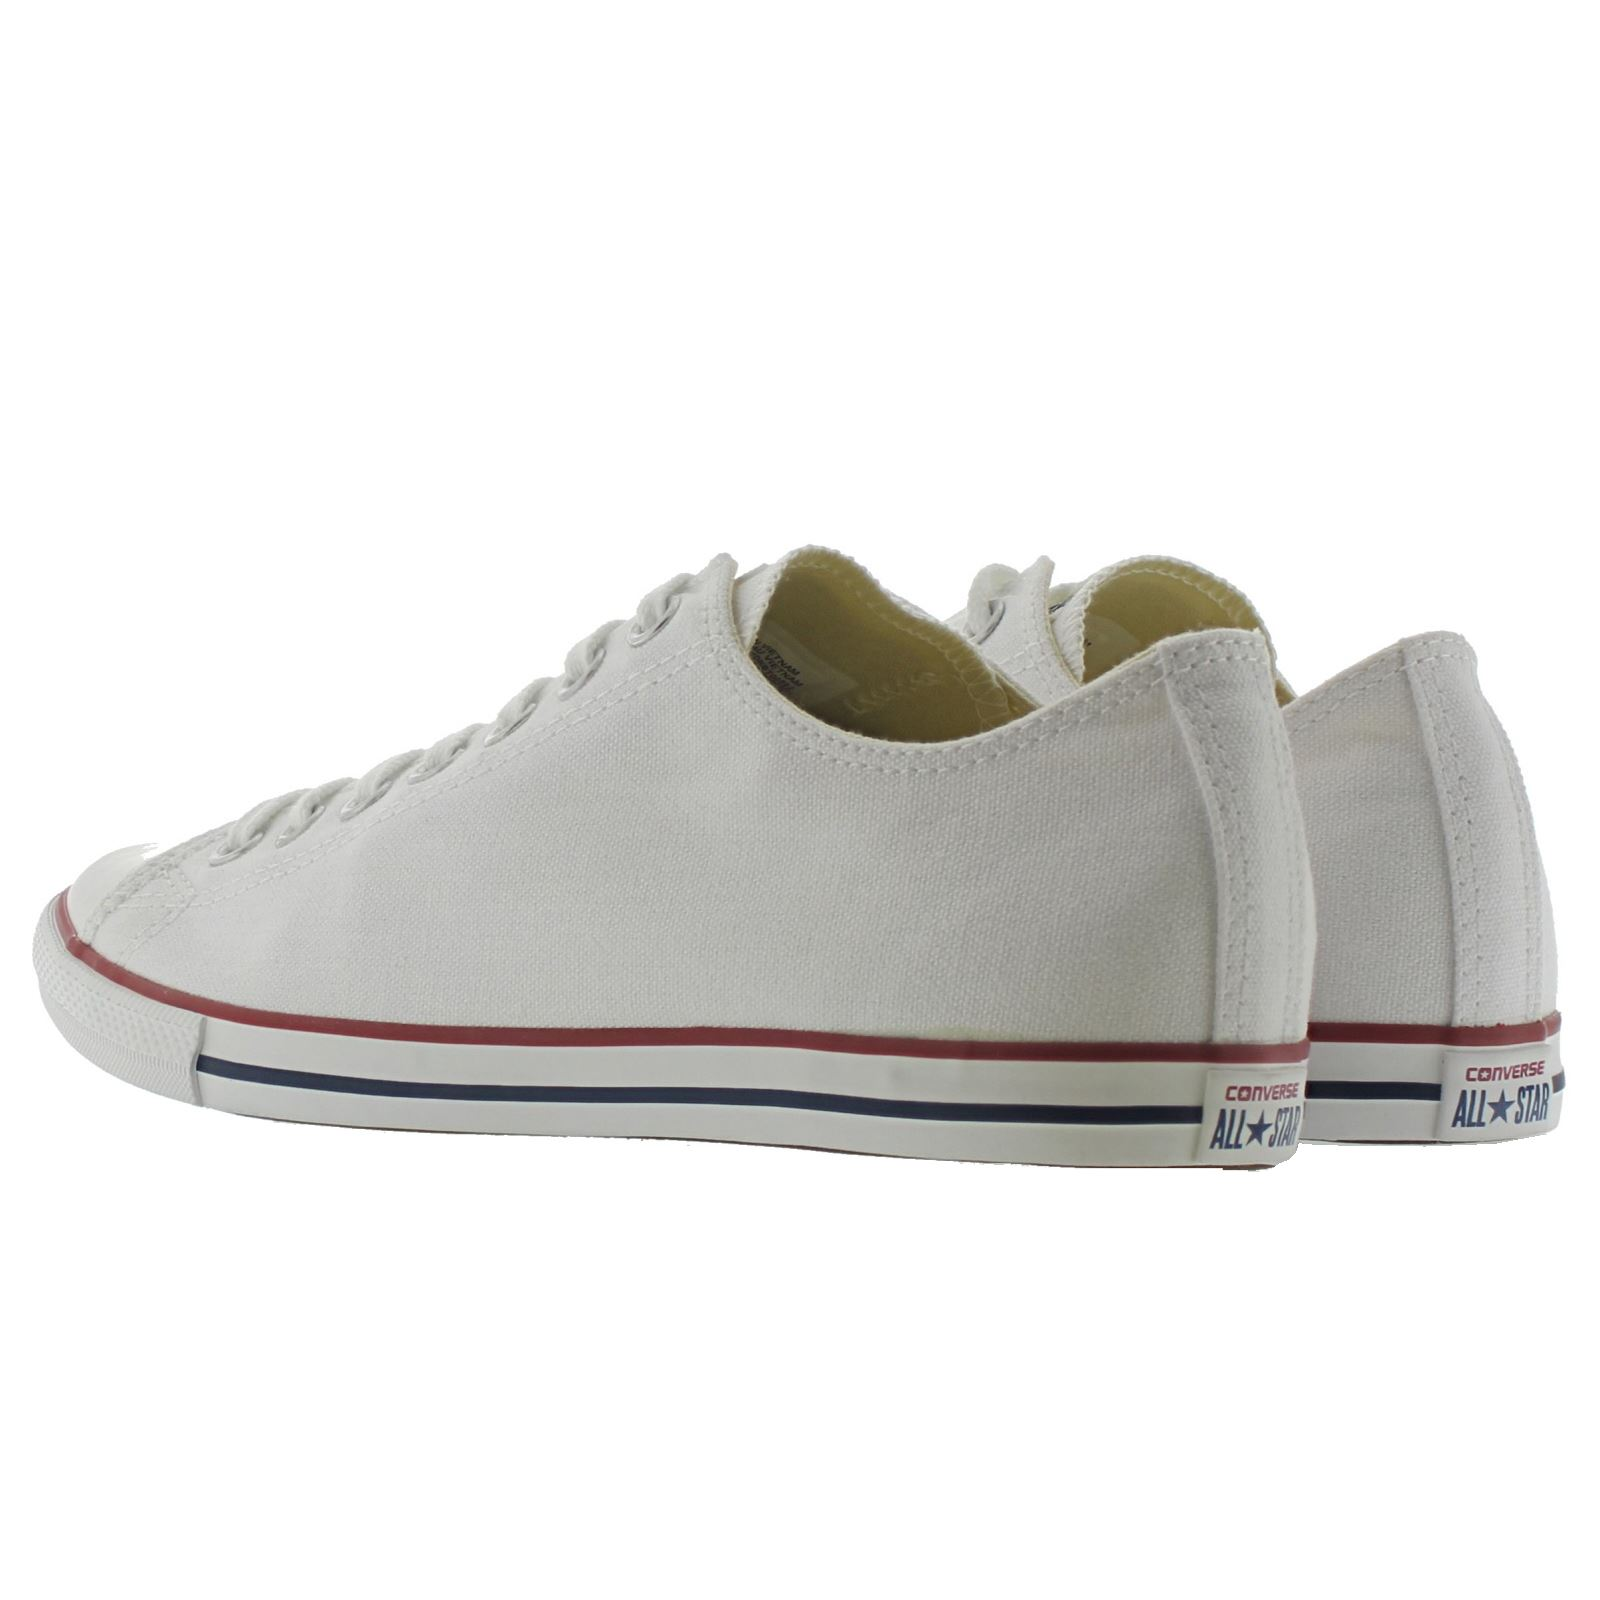 Converse-All-Star-Ox-Unisex-Mens-Womens-Ladies-Trainers thumbnail 27